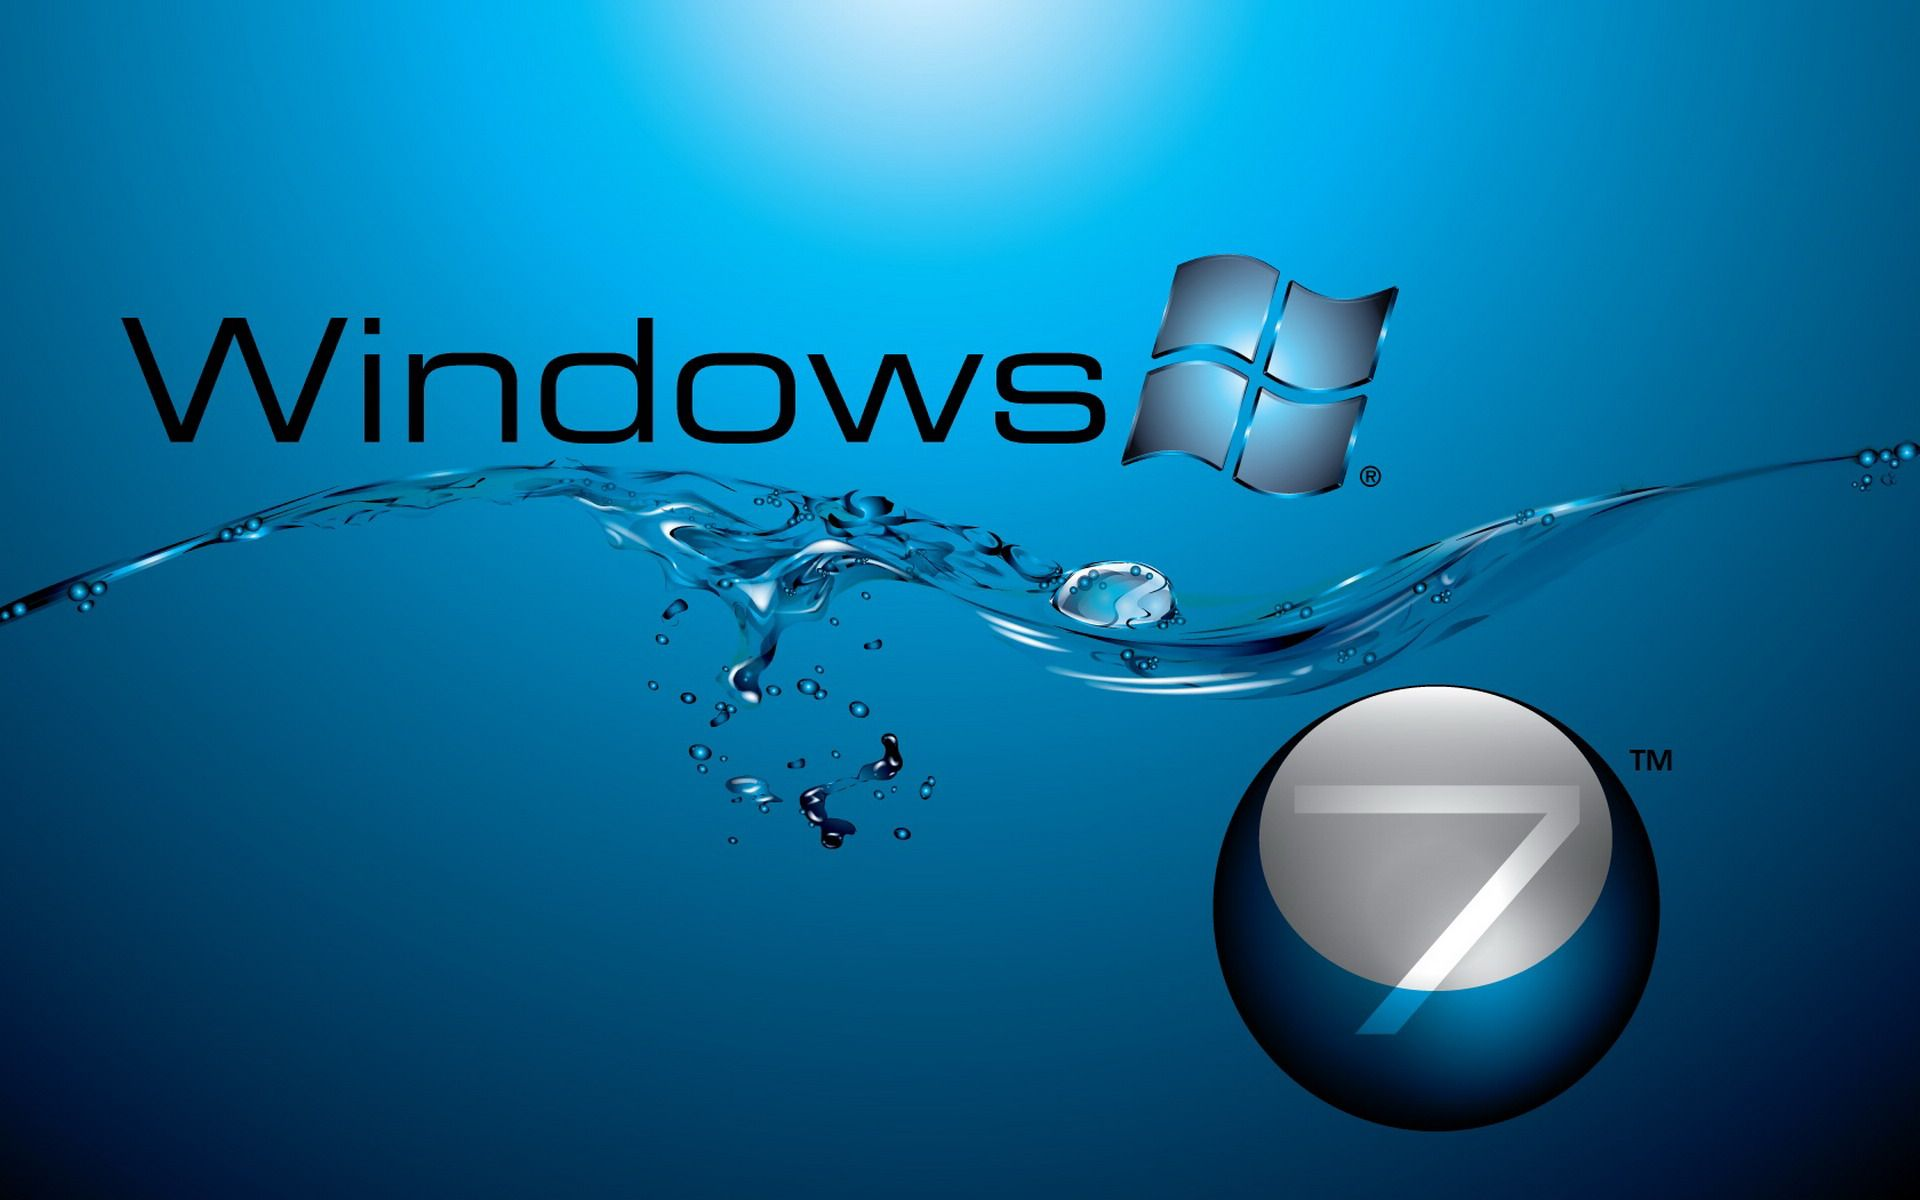 Windows 7 ultimate free download iso 32 and 64 bit get for Window 7 ultimate